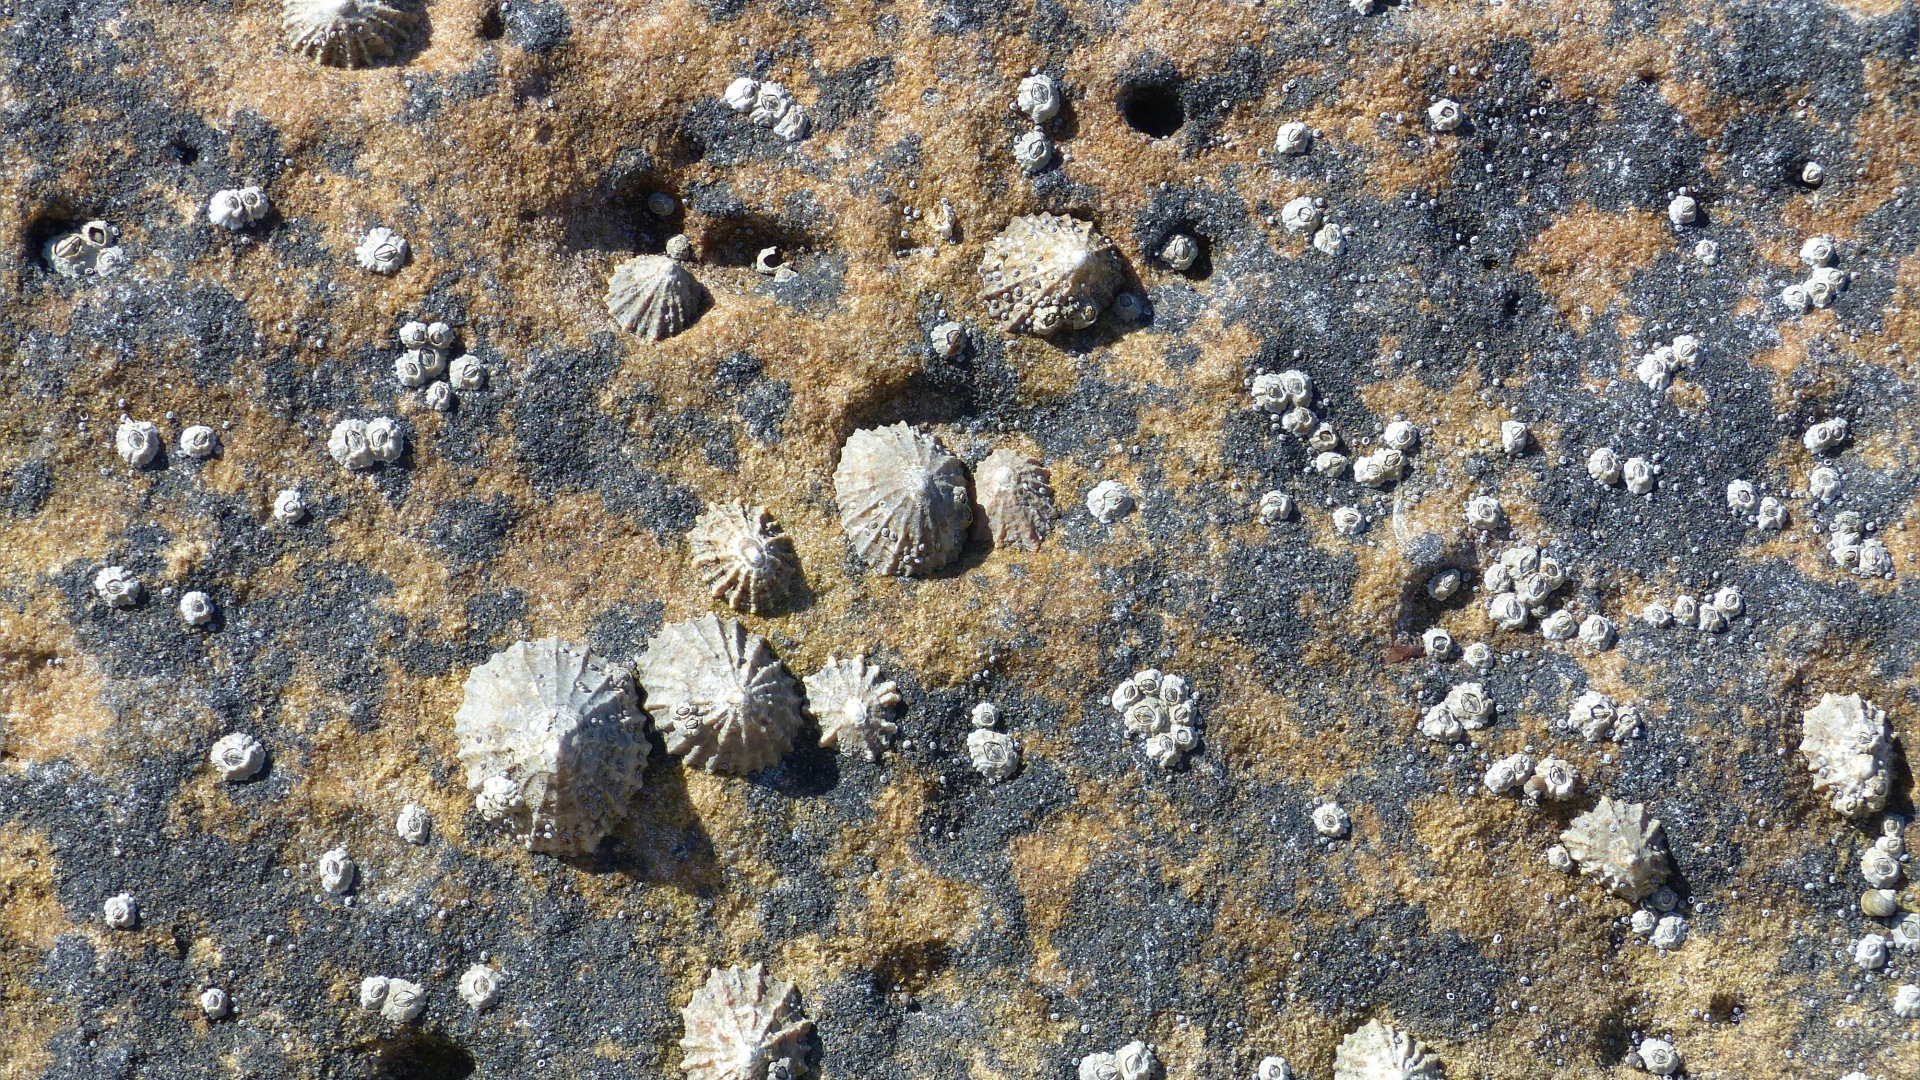 Limpets on sedimentary Upper Old Red Devonian Sandstone at Portmahomack